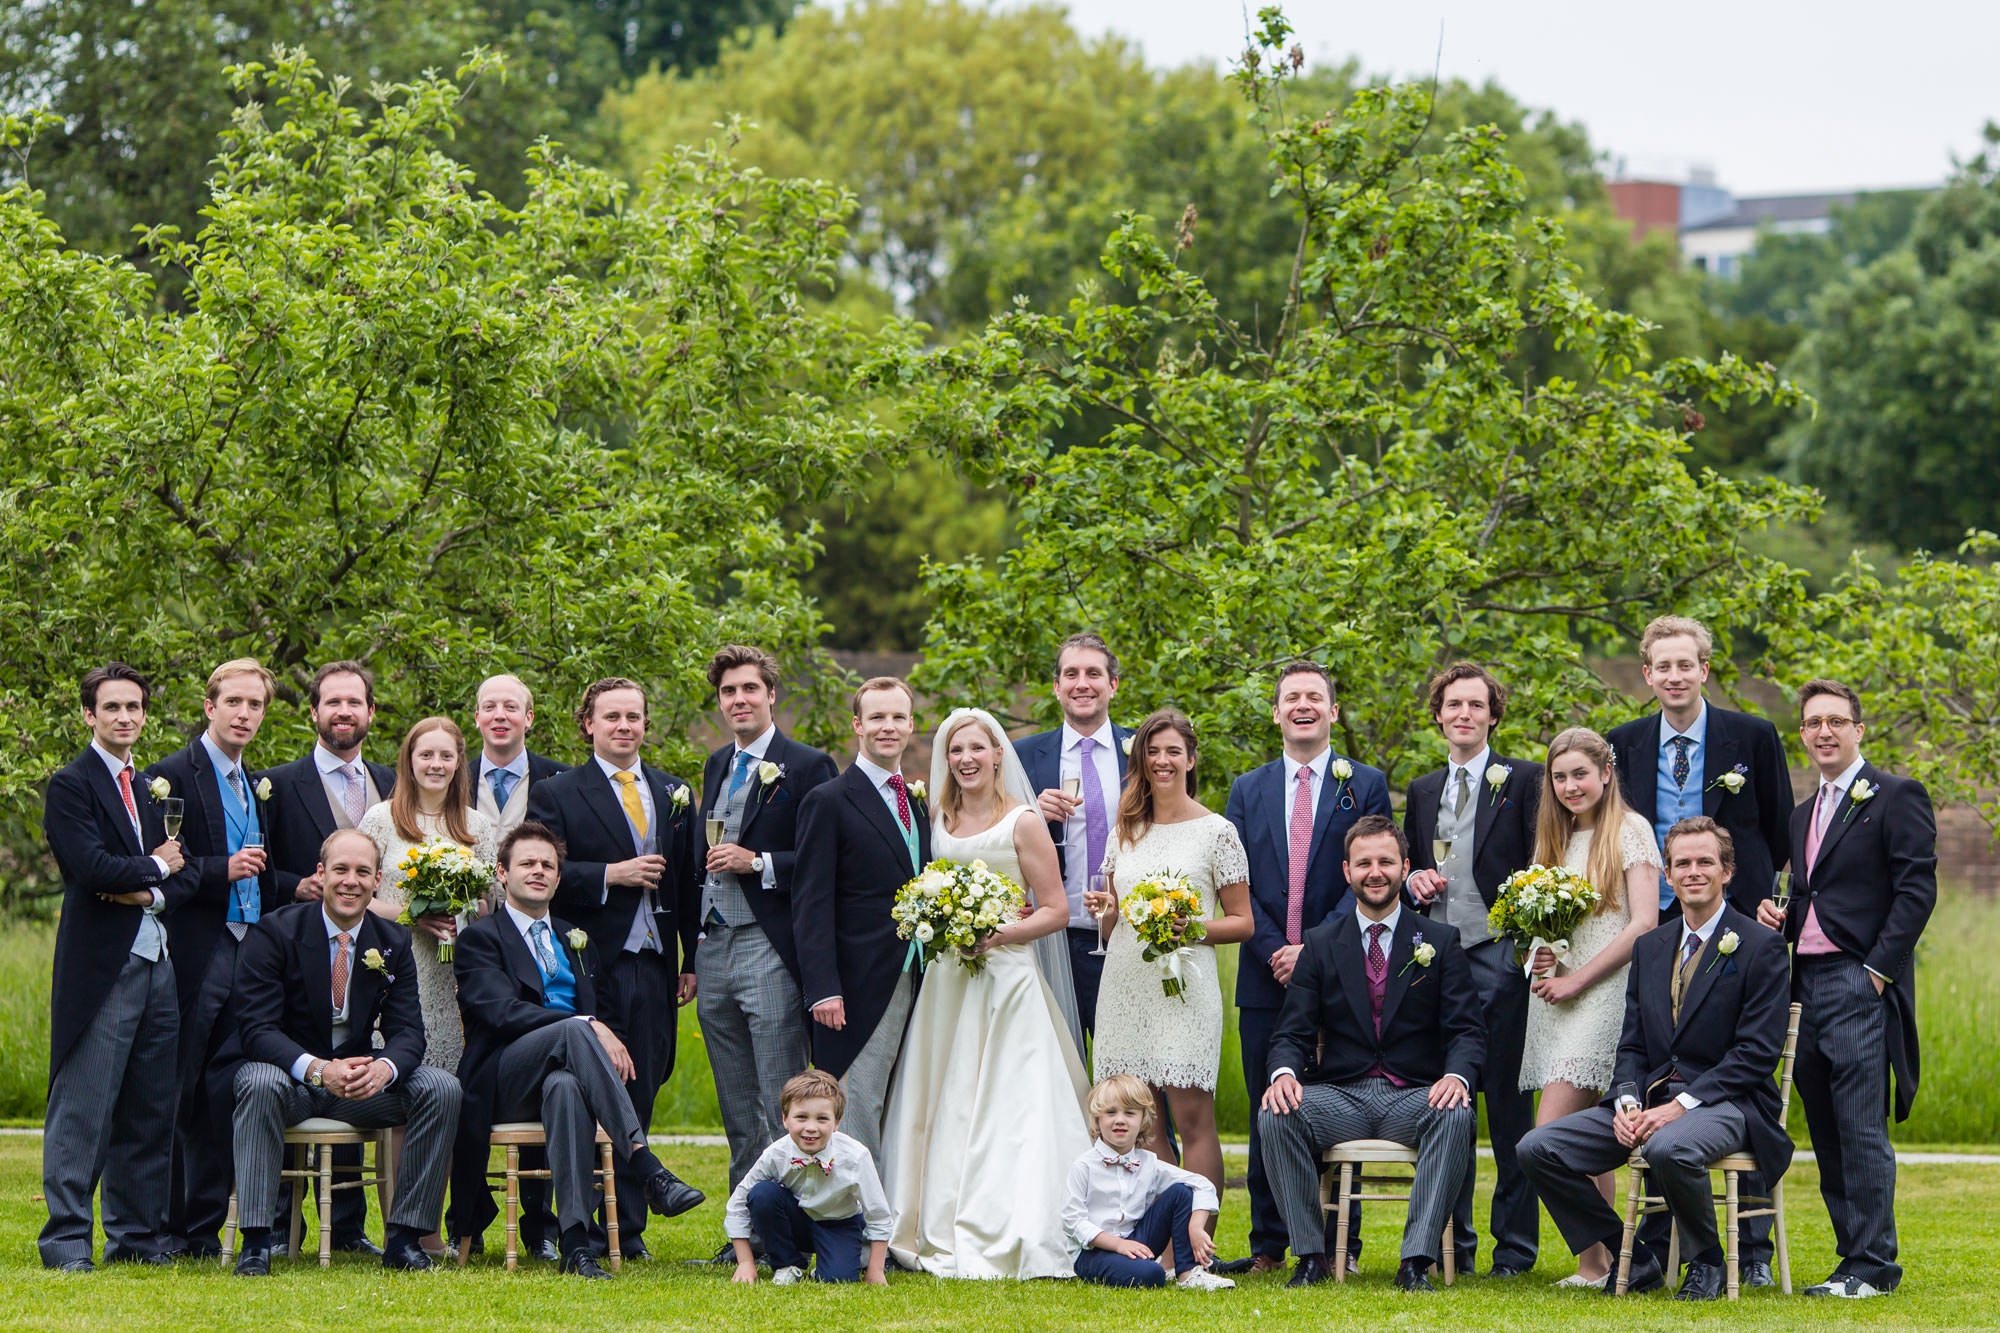 Groups photos at Fulham Palace Wedding